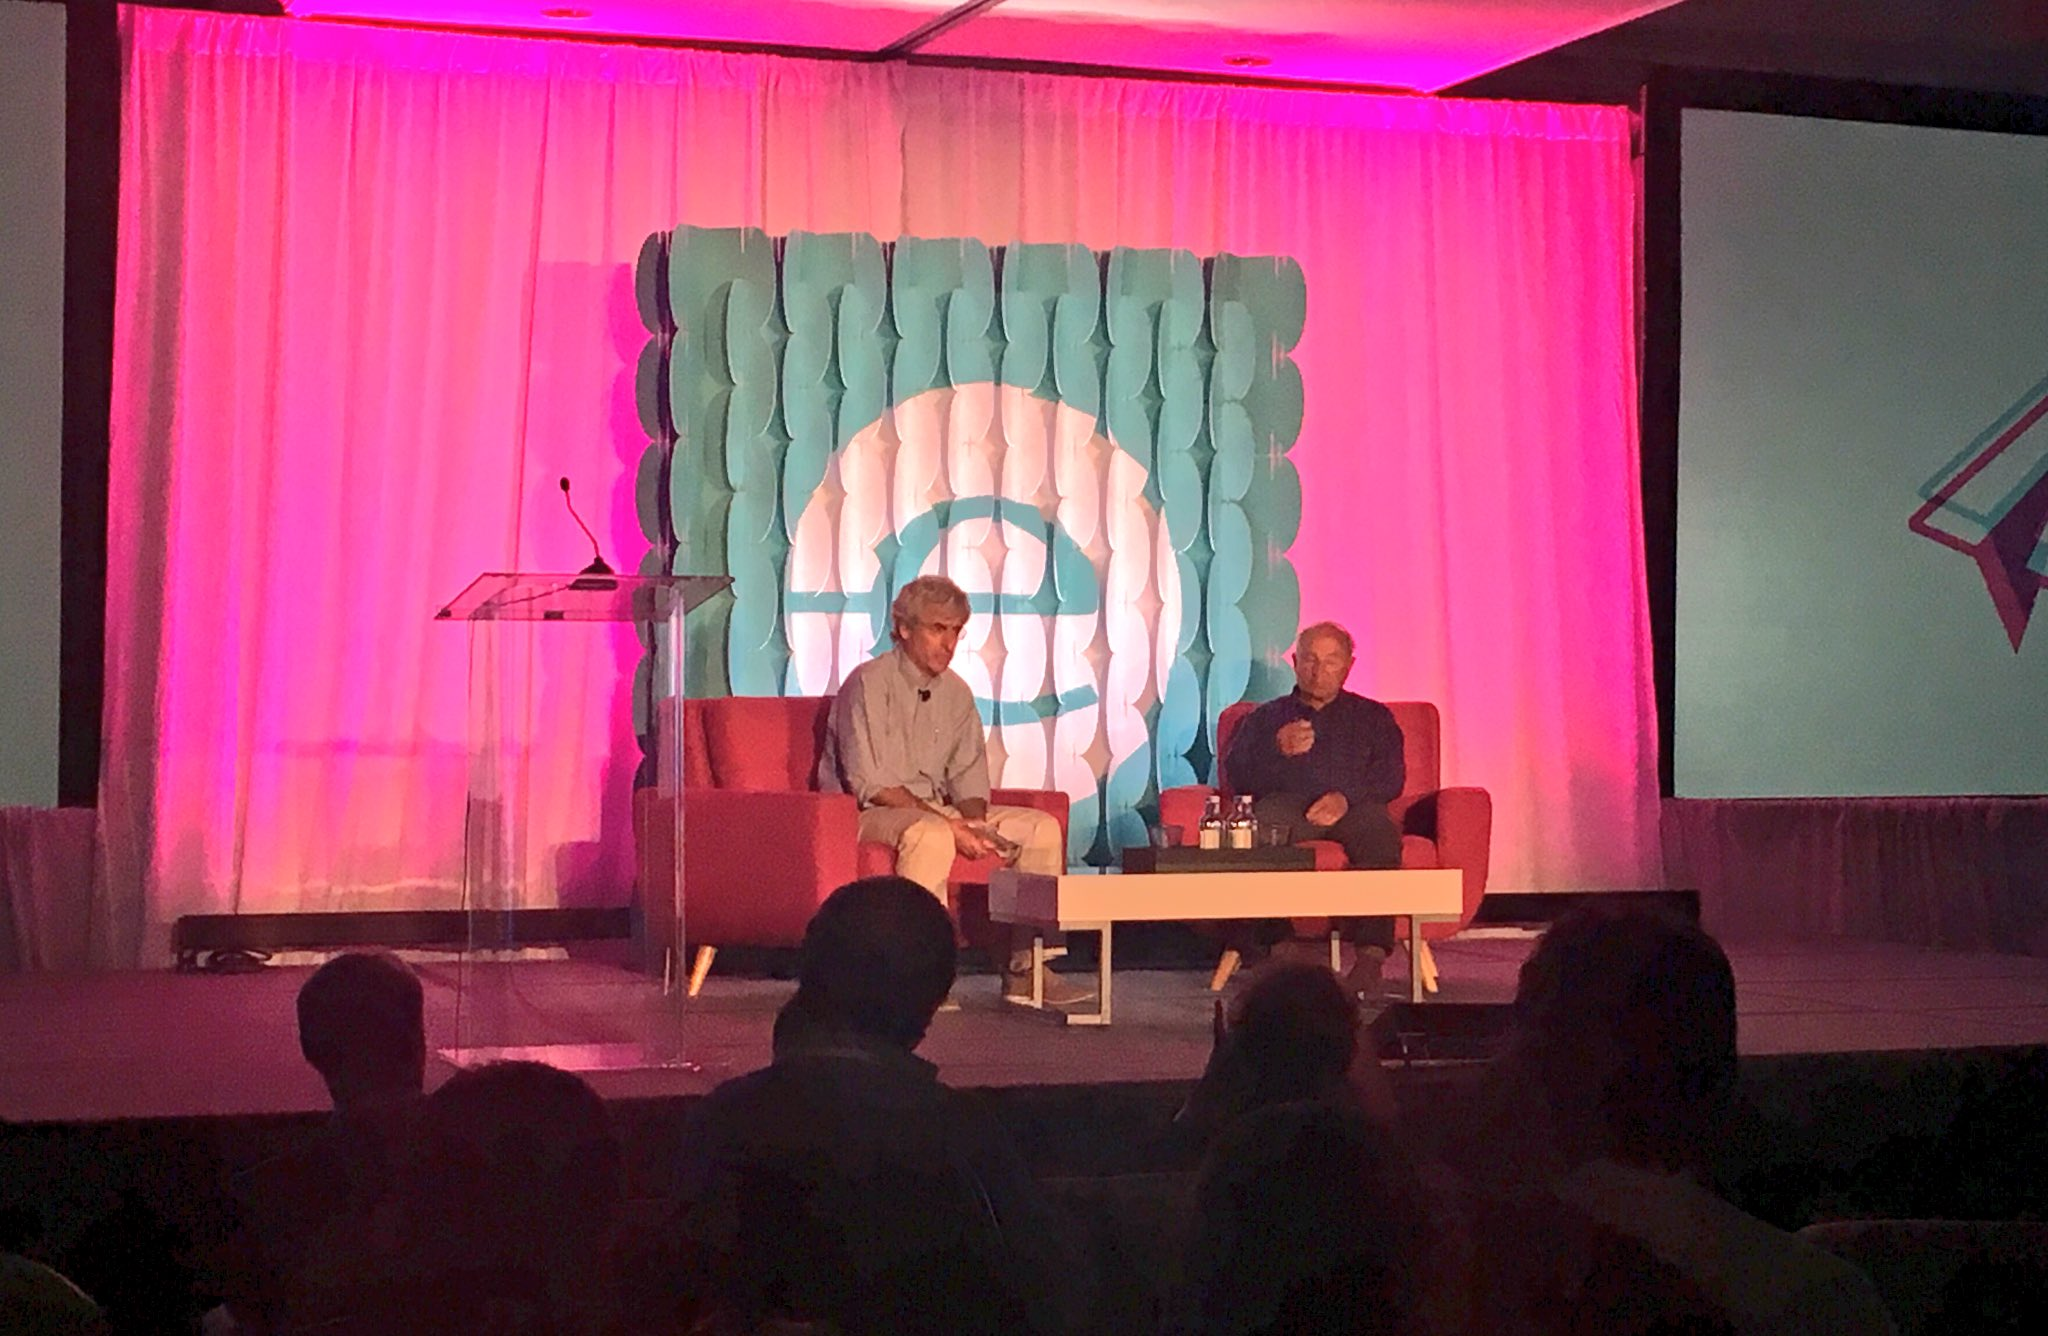 """I don't like being told what to do and I don't like telling people what to do"" @patagonia Founder Yvon Chouinard #endeavorretreat https://t.co/fT8m3eSEGL"